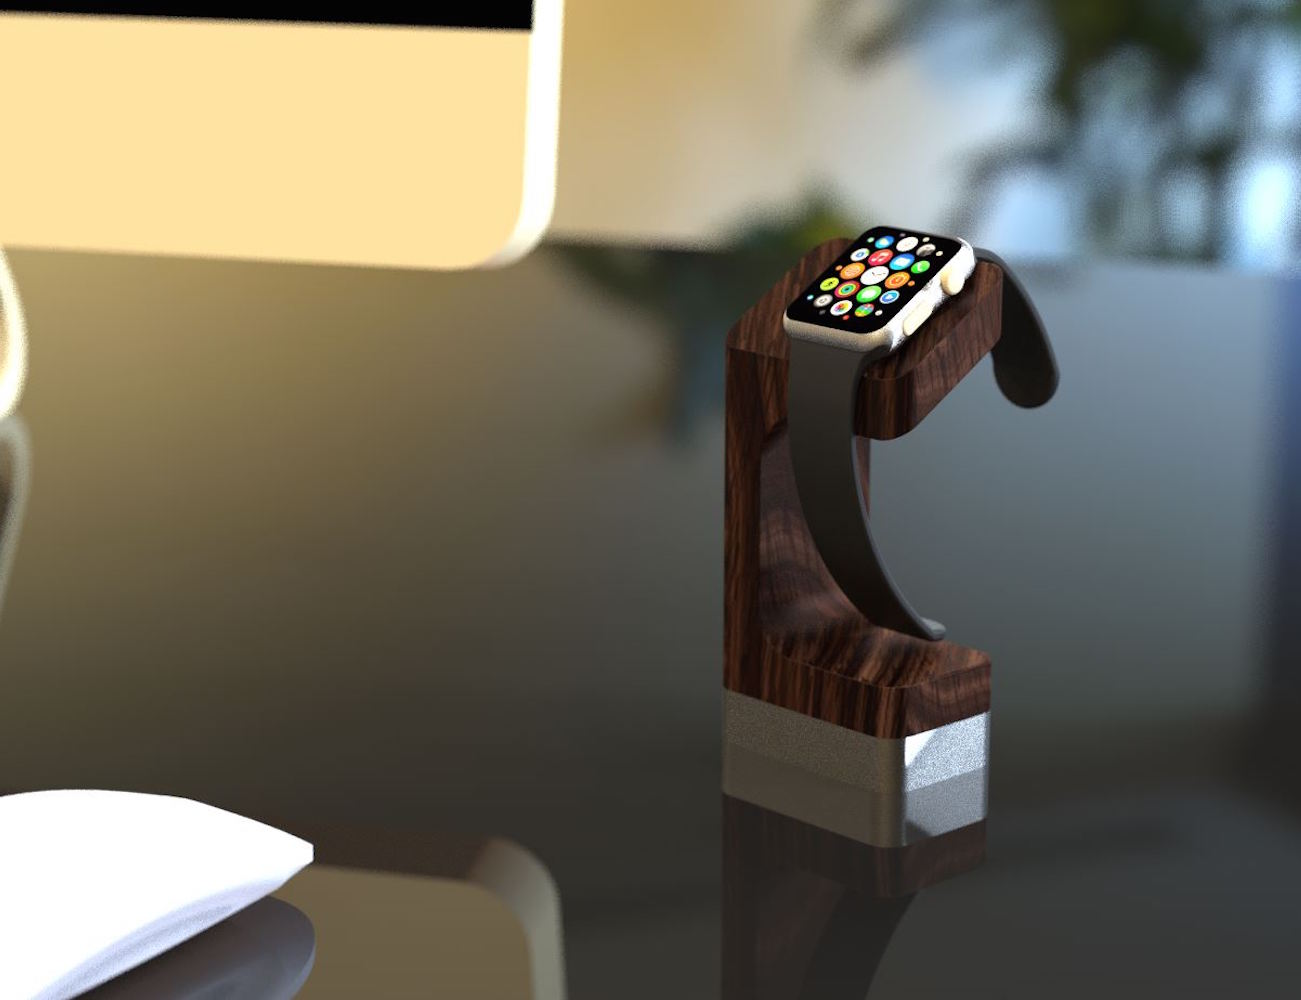 apple-watch-charging-stand-02